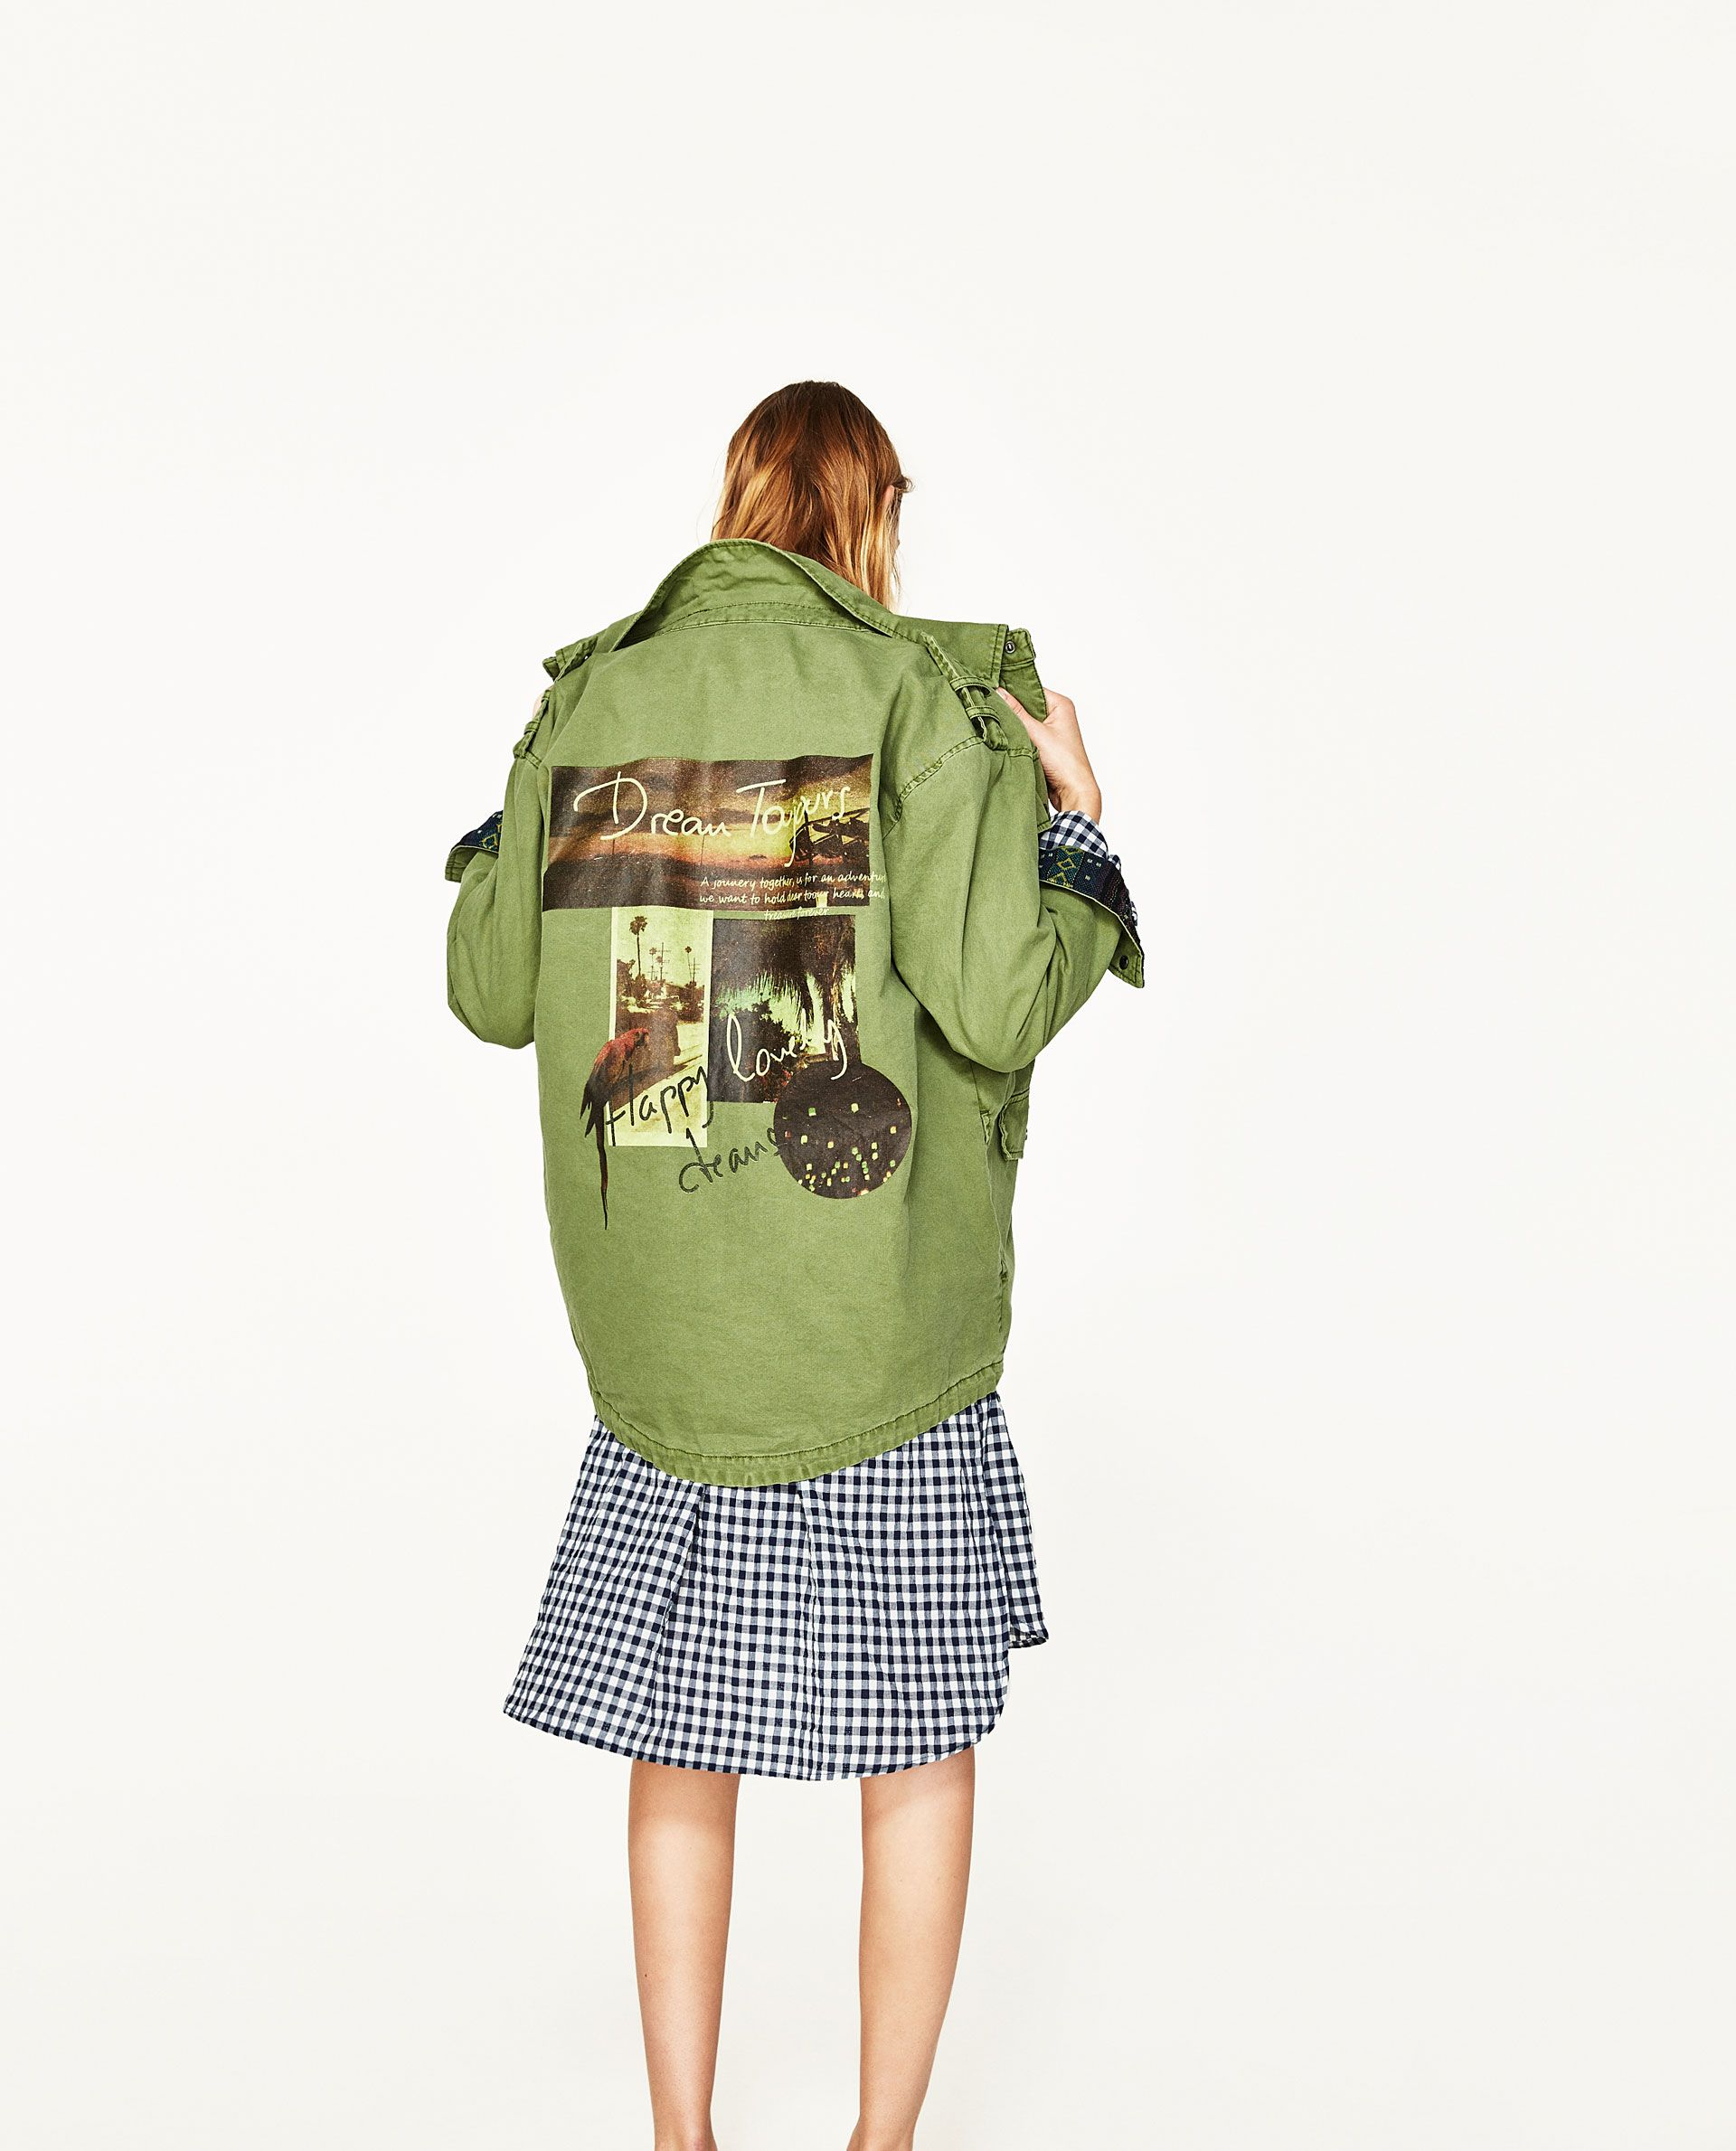 0ccaf60fc7 PARKA WITH BACK PRINT | Women's Back to School Fashion | Parka ...